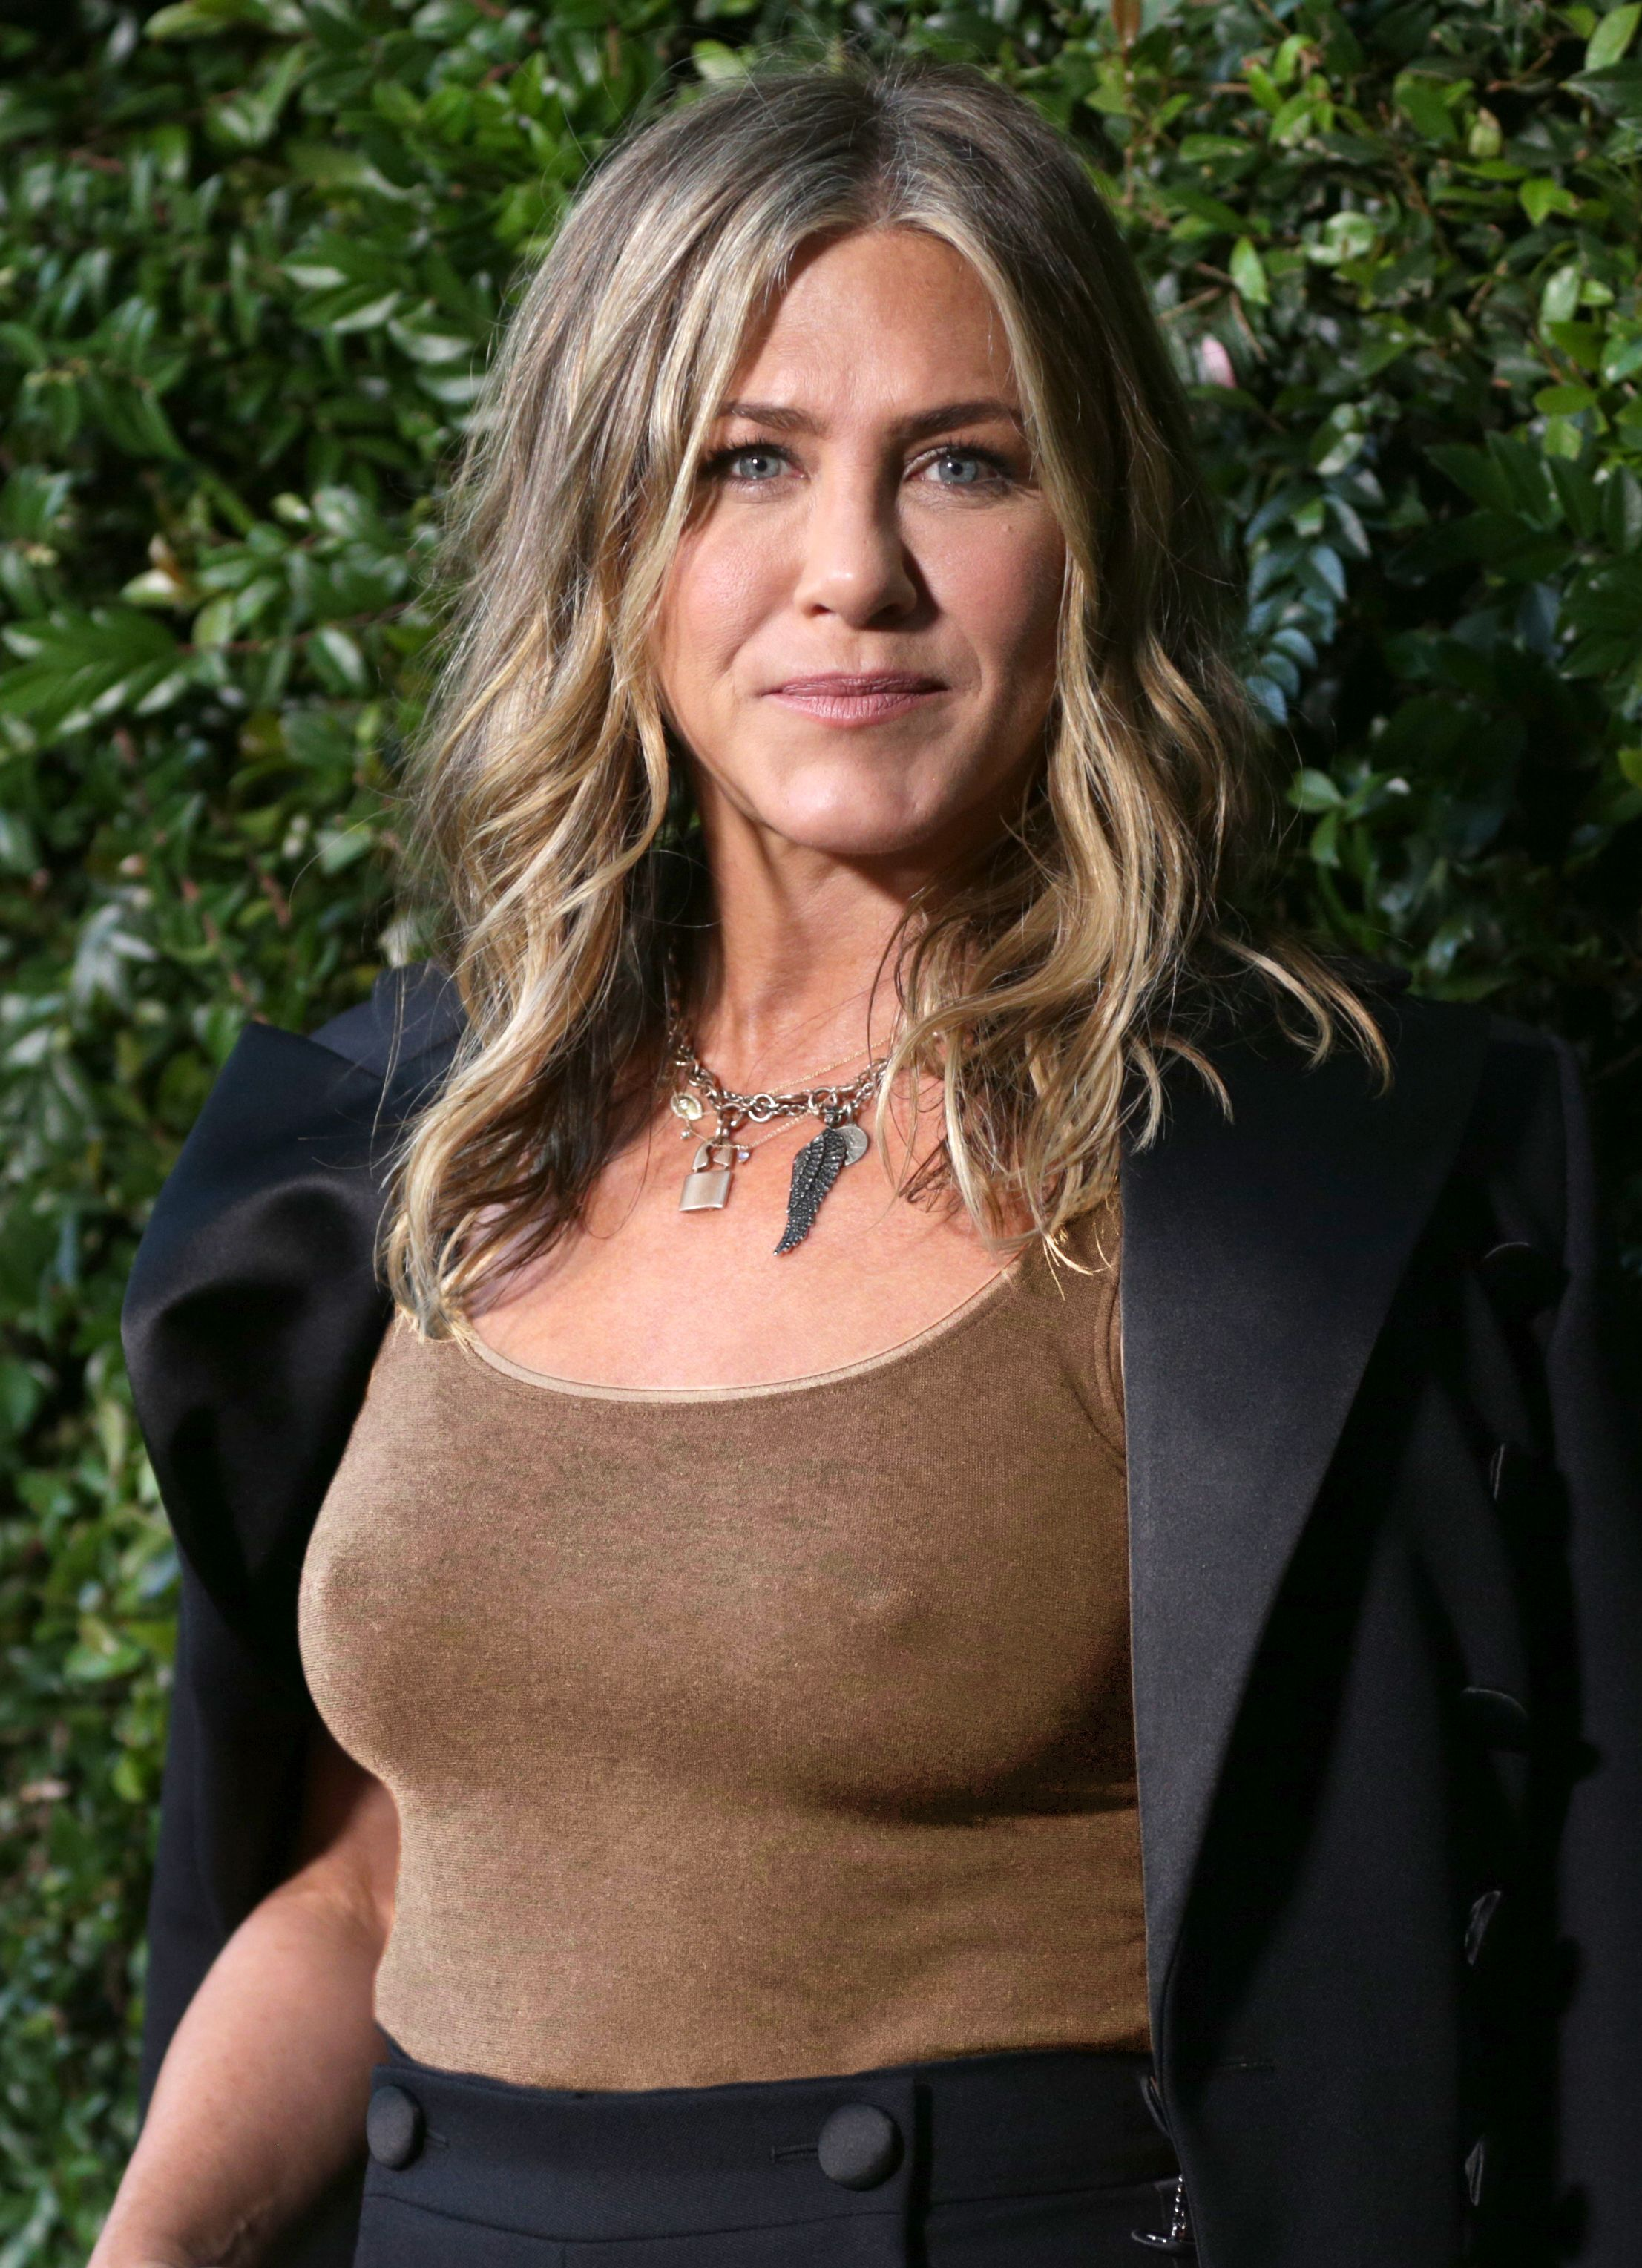 Jennifer aniston nipples on friends, finnish passed out naked